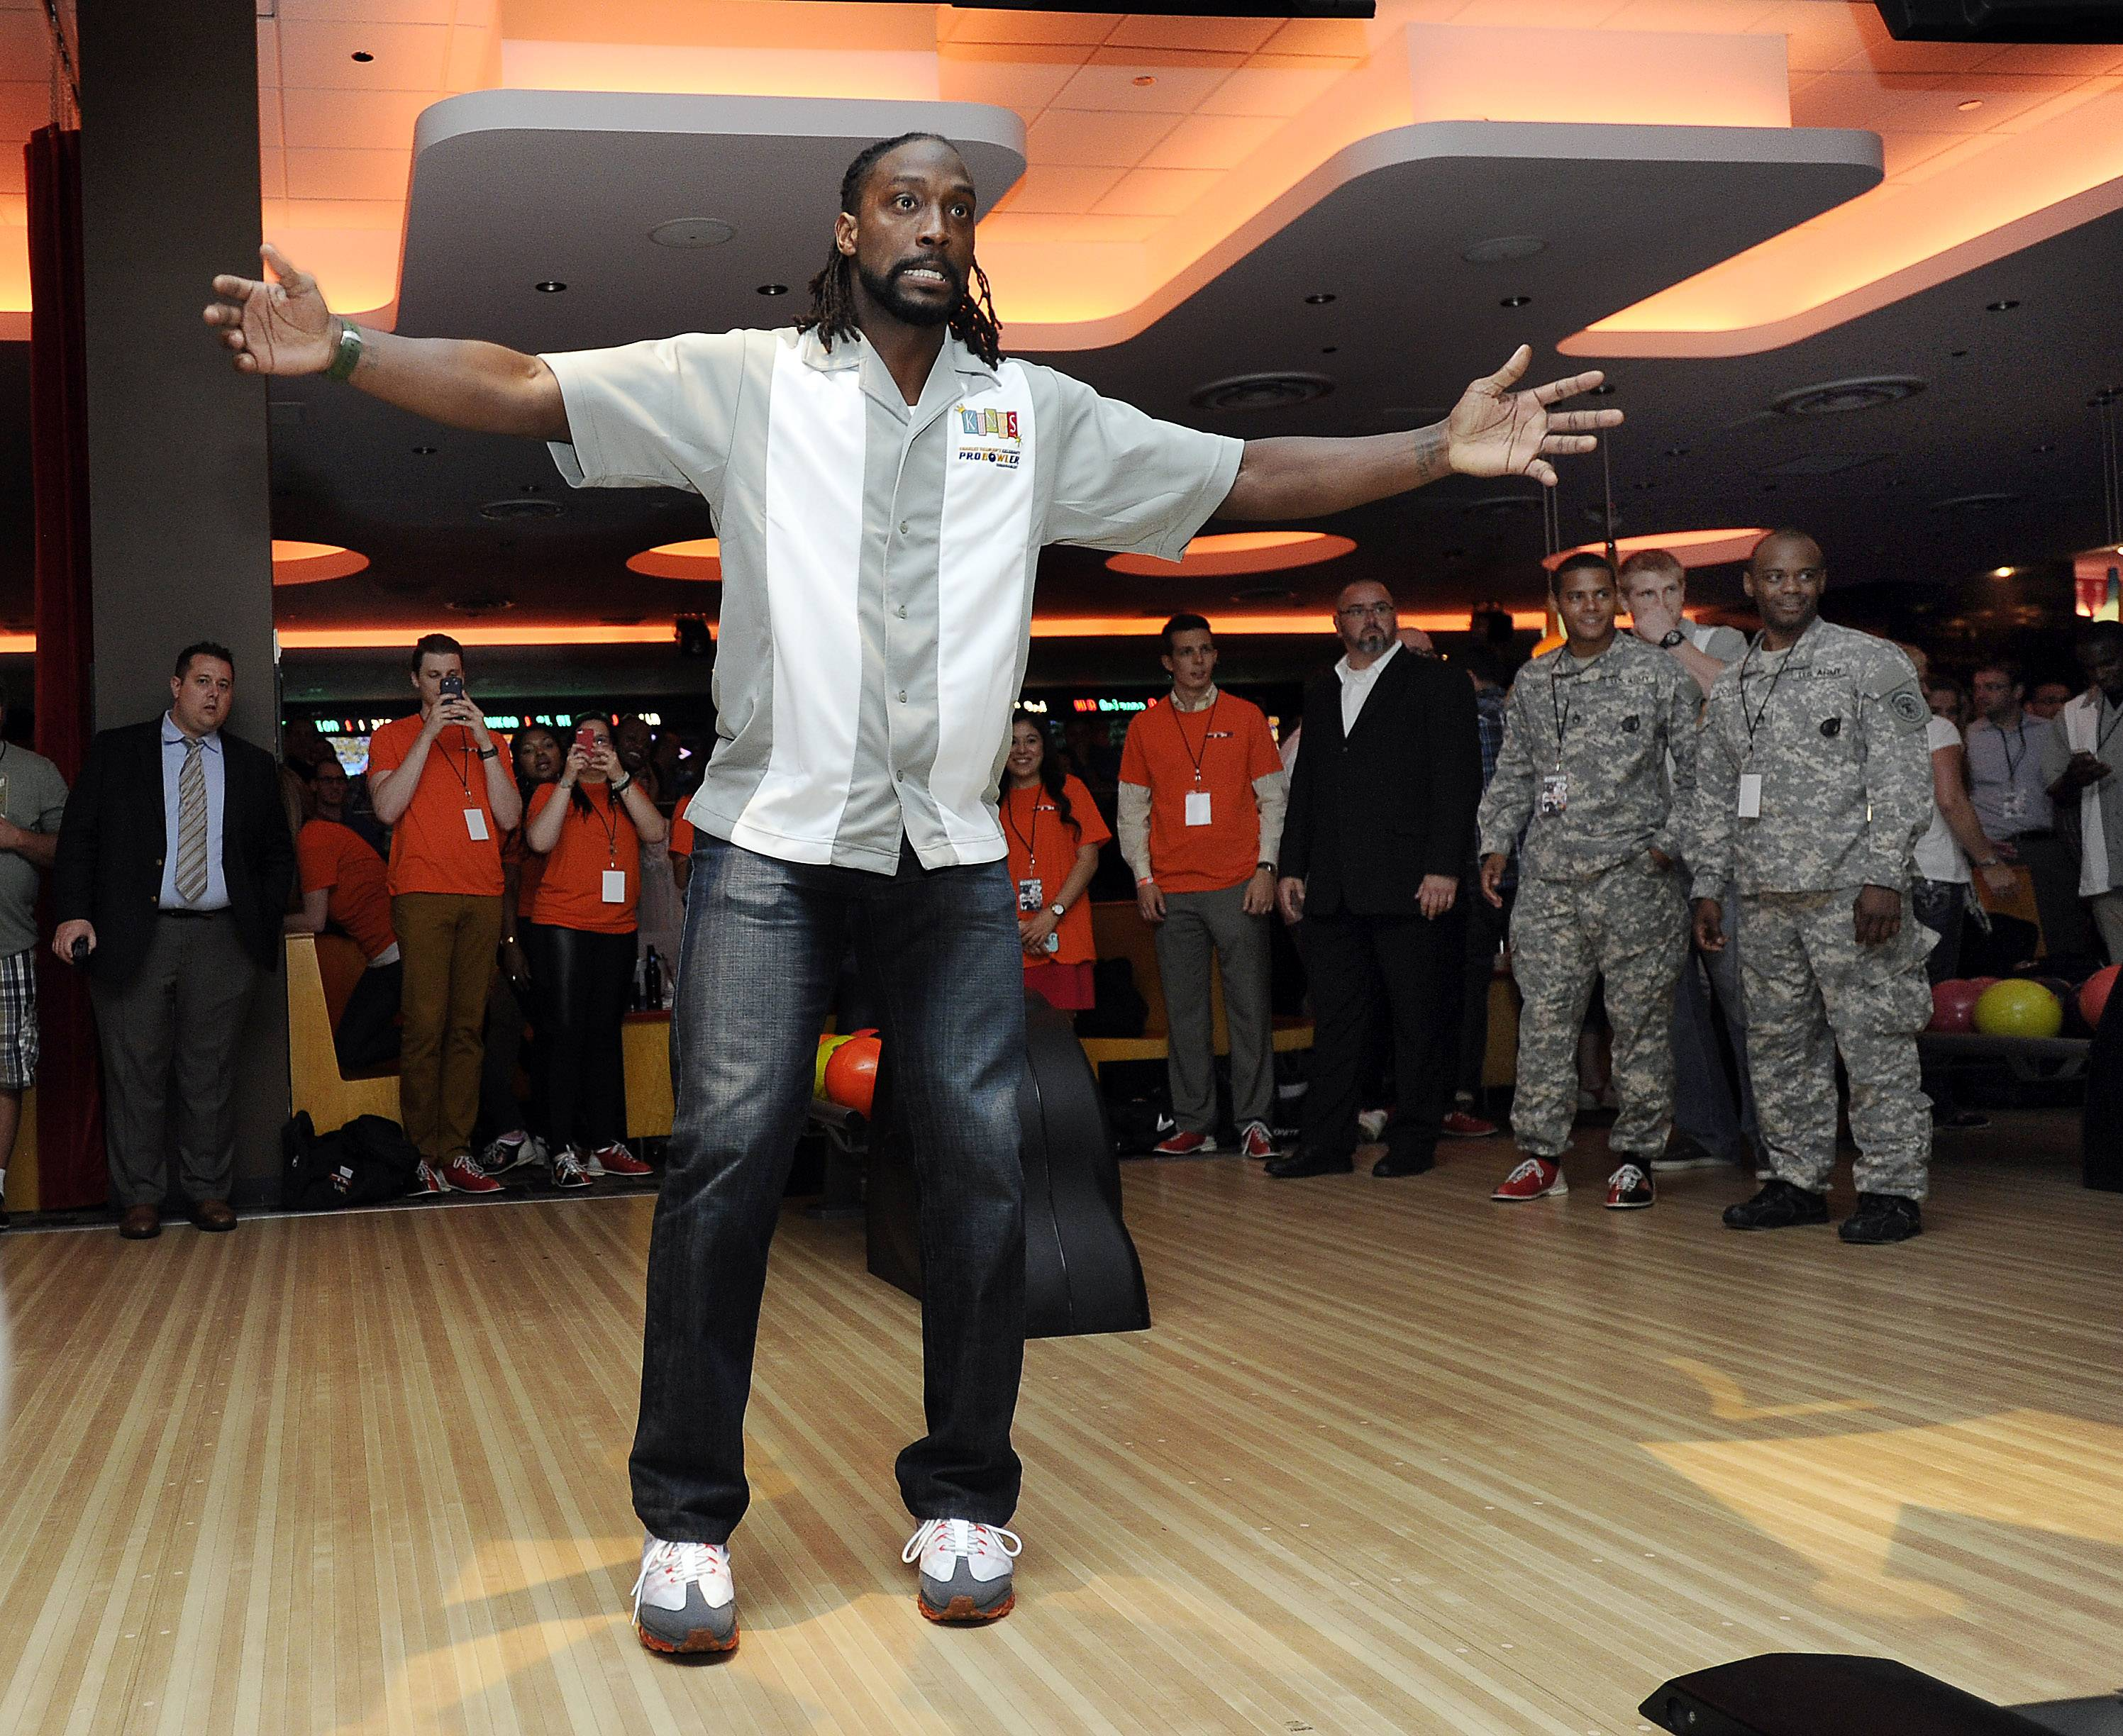 Charles Tillman reacts to his throw as he kicks off his bowling tournament Thursday in Rosemont.